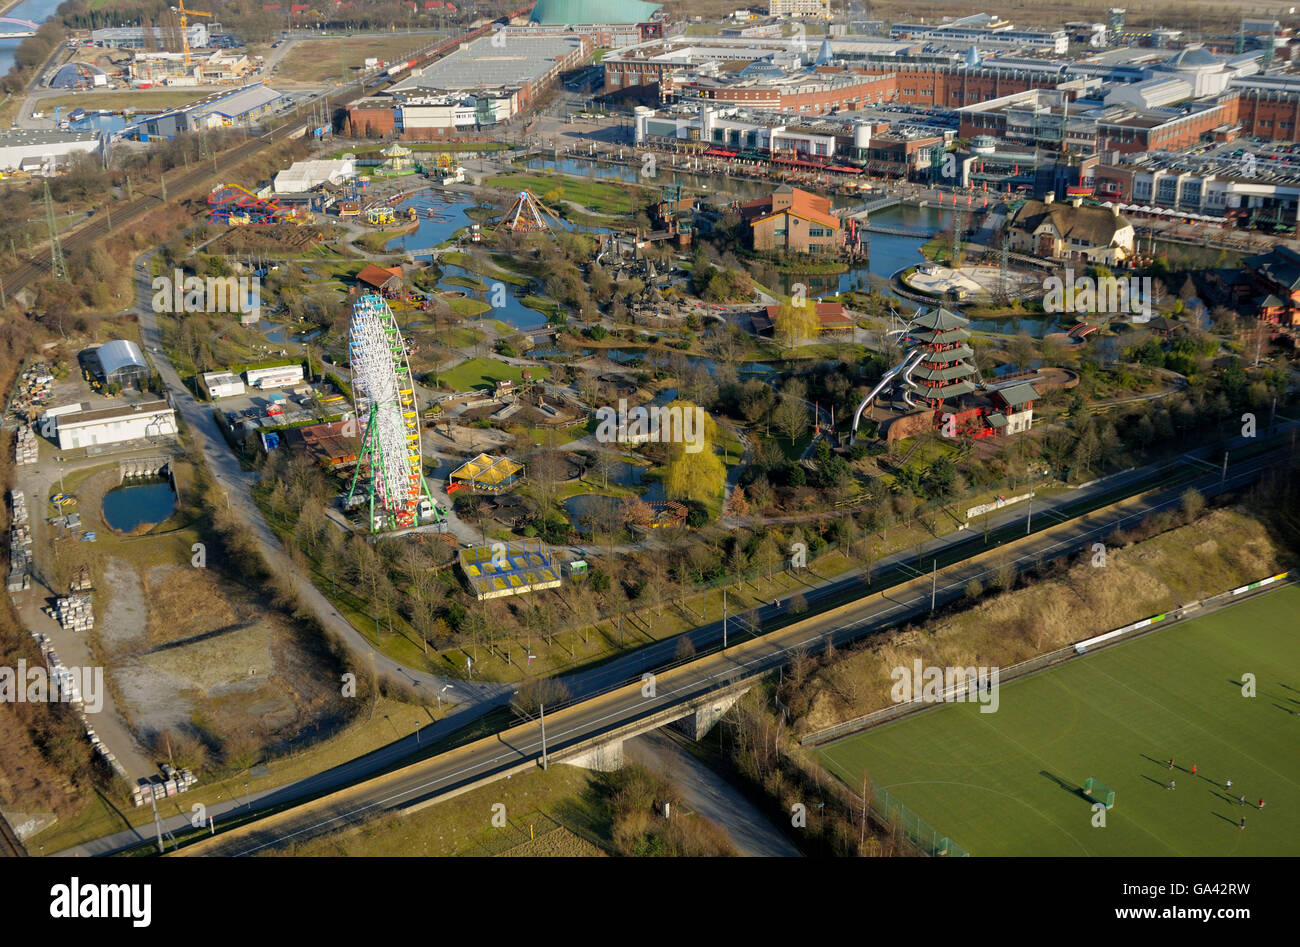 View from Gasometer, on CentrO Park, Shopping centre CentrO, Oberhausen, Ruhr area, North Rhine-Westphalia, Germany Stock Photo